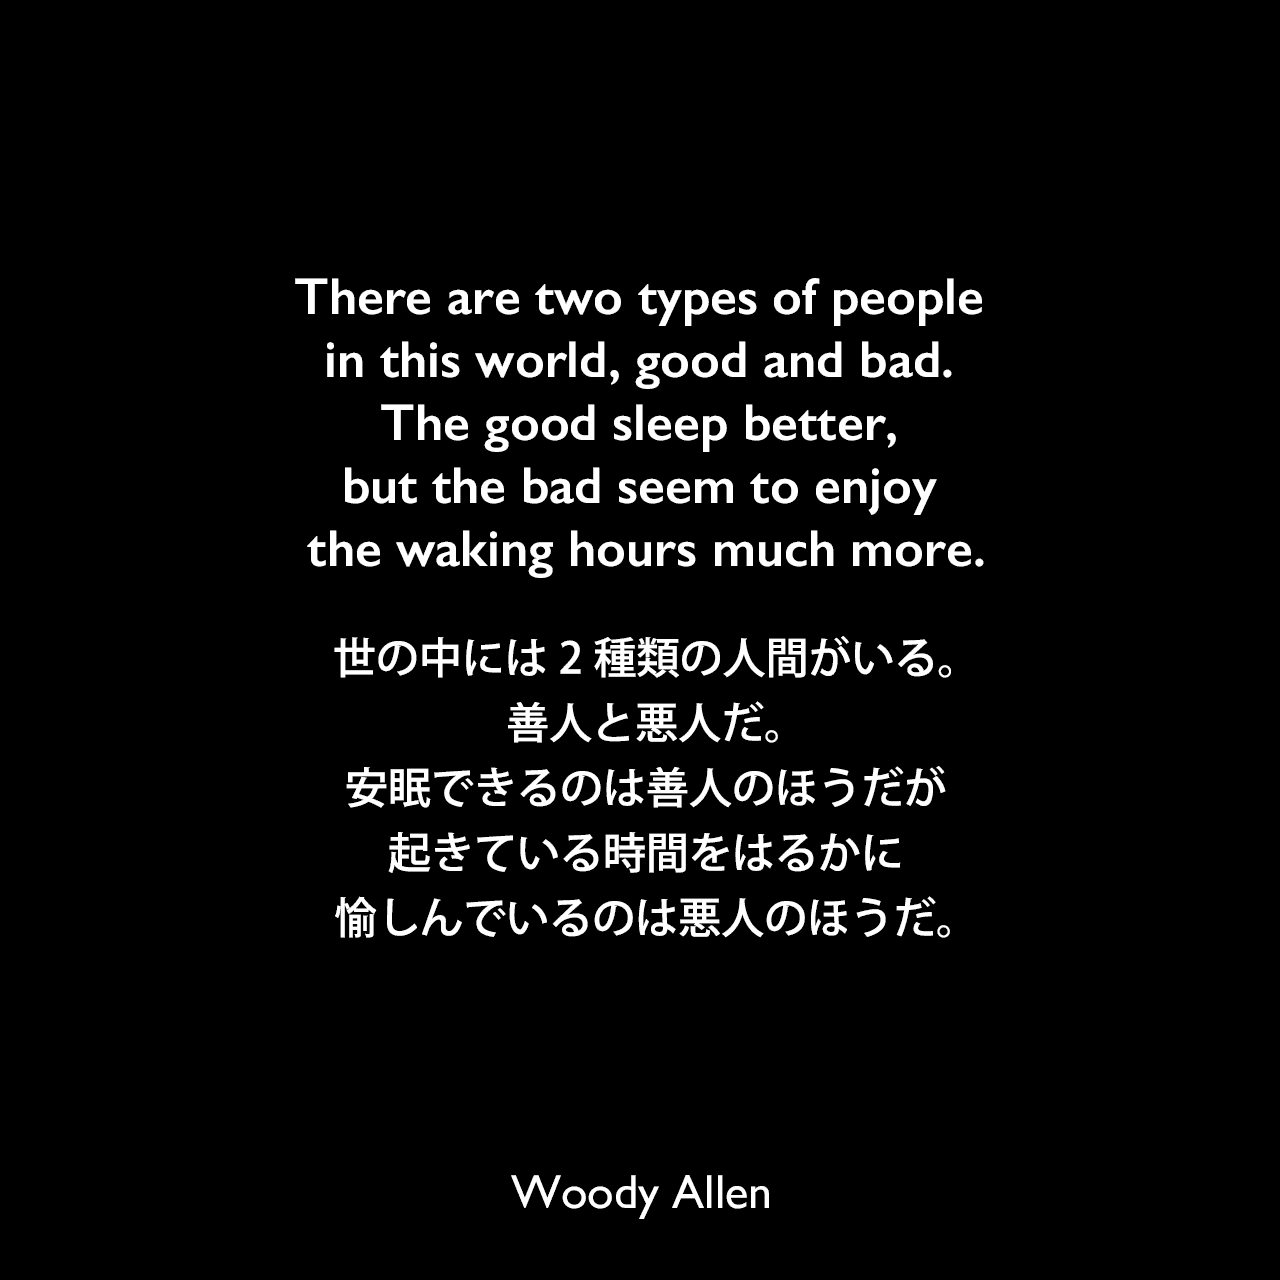 There are two types of people in this world, good and bad. The good sleep better, but the bad seem to enjoy the waking hours much more.世の中には2種類の人間がいる。善人と悪人だ。安眠できるのは善人のほうだが、起きている時間をはるかに愉しんでいるのは悪人のほうだ。Woody Allen